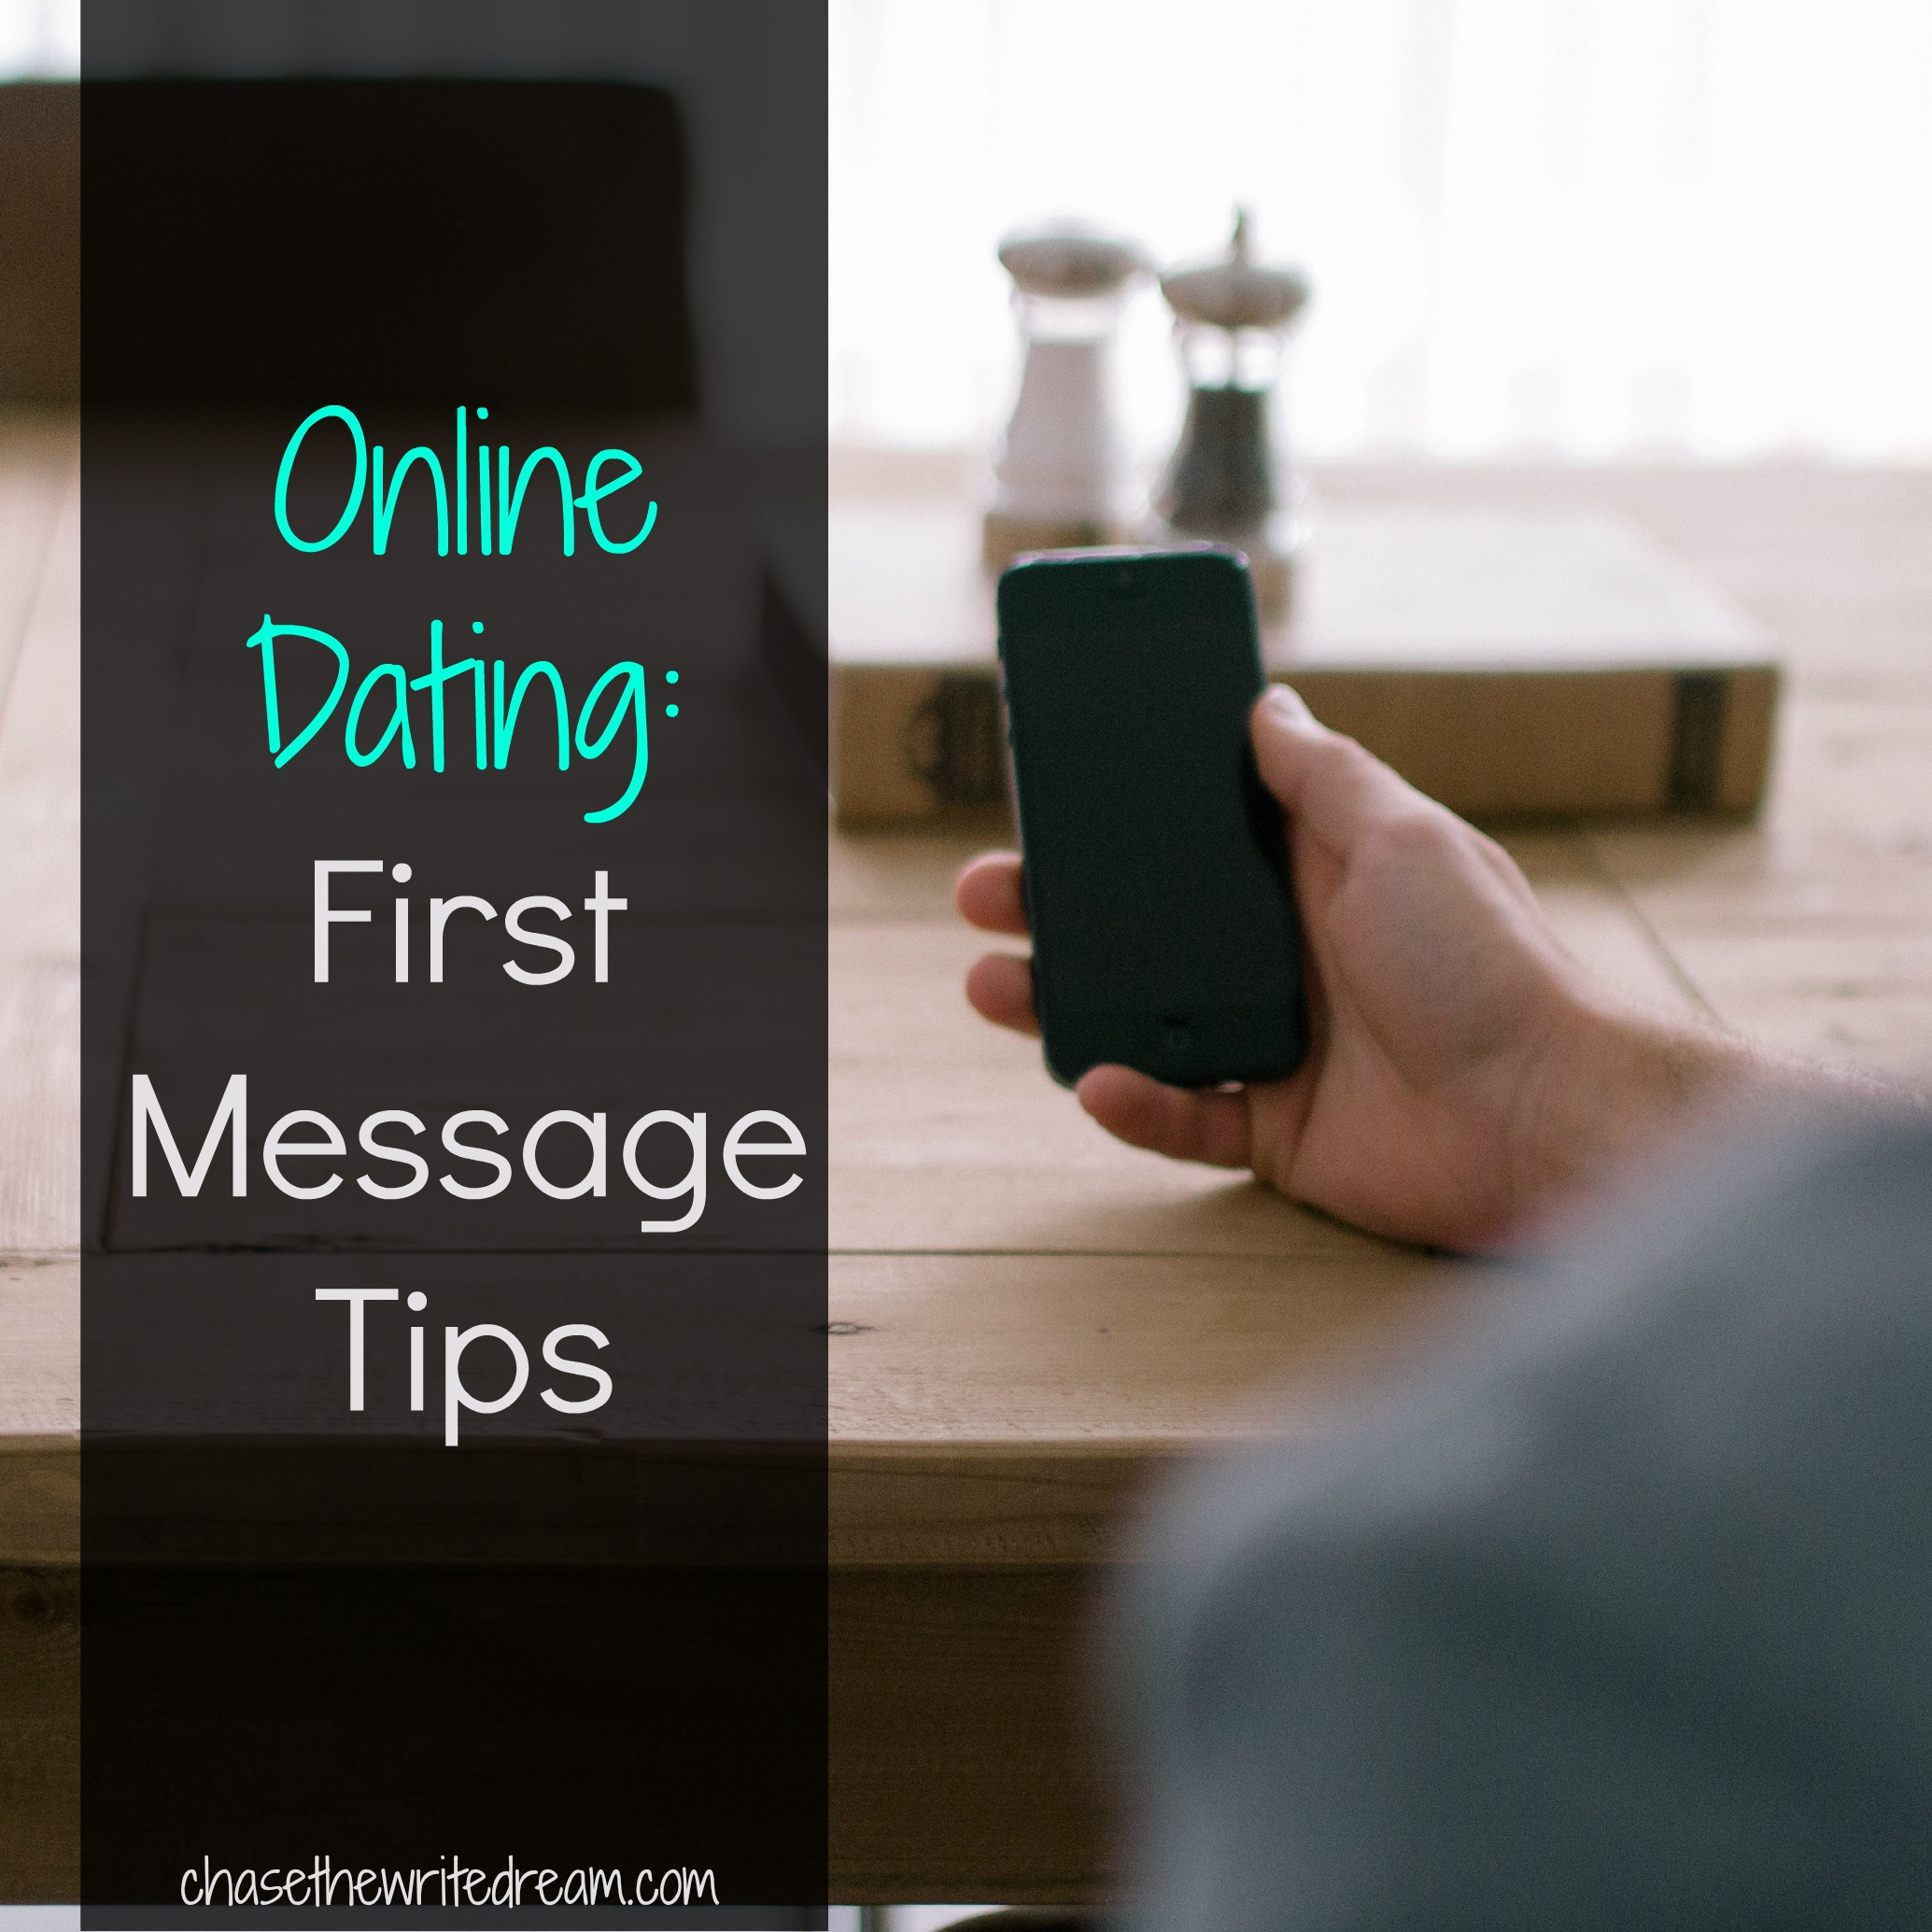 What to write on online dating message